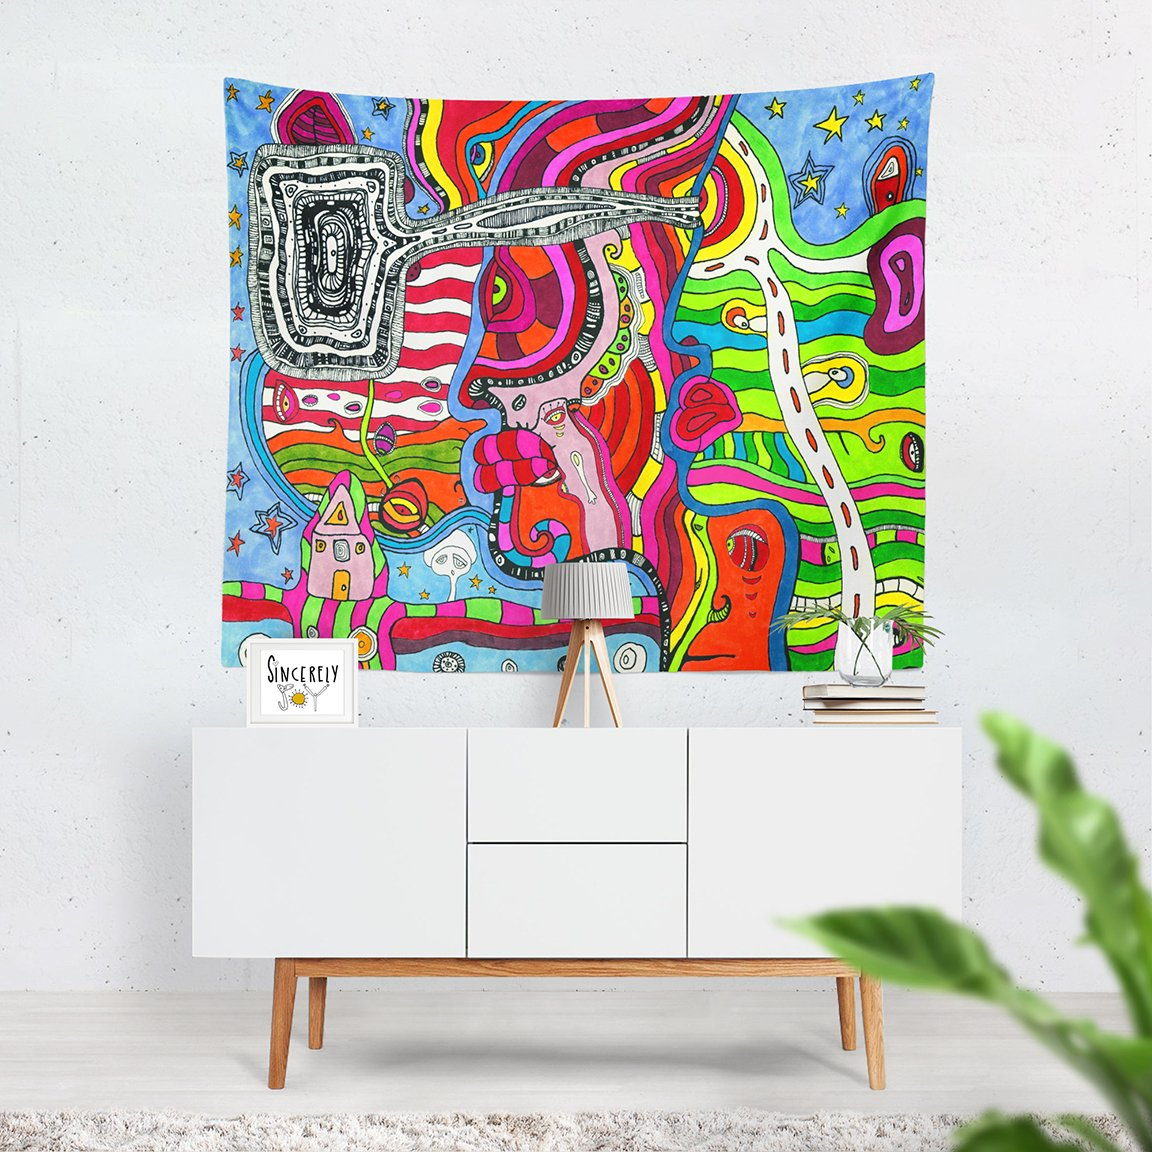 Psychedelic Mixed Media Tapestry Multi-Directional